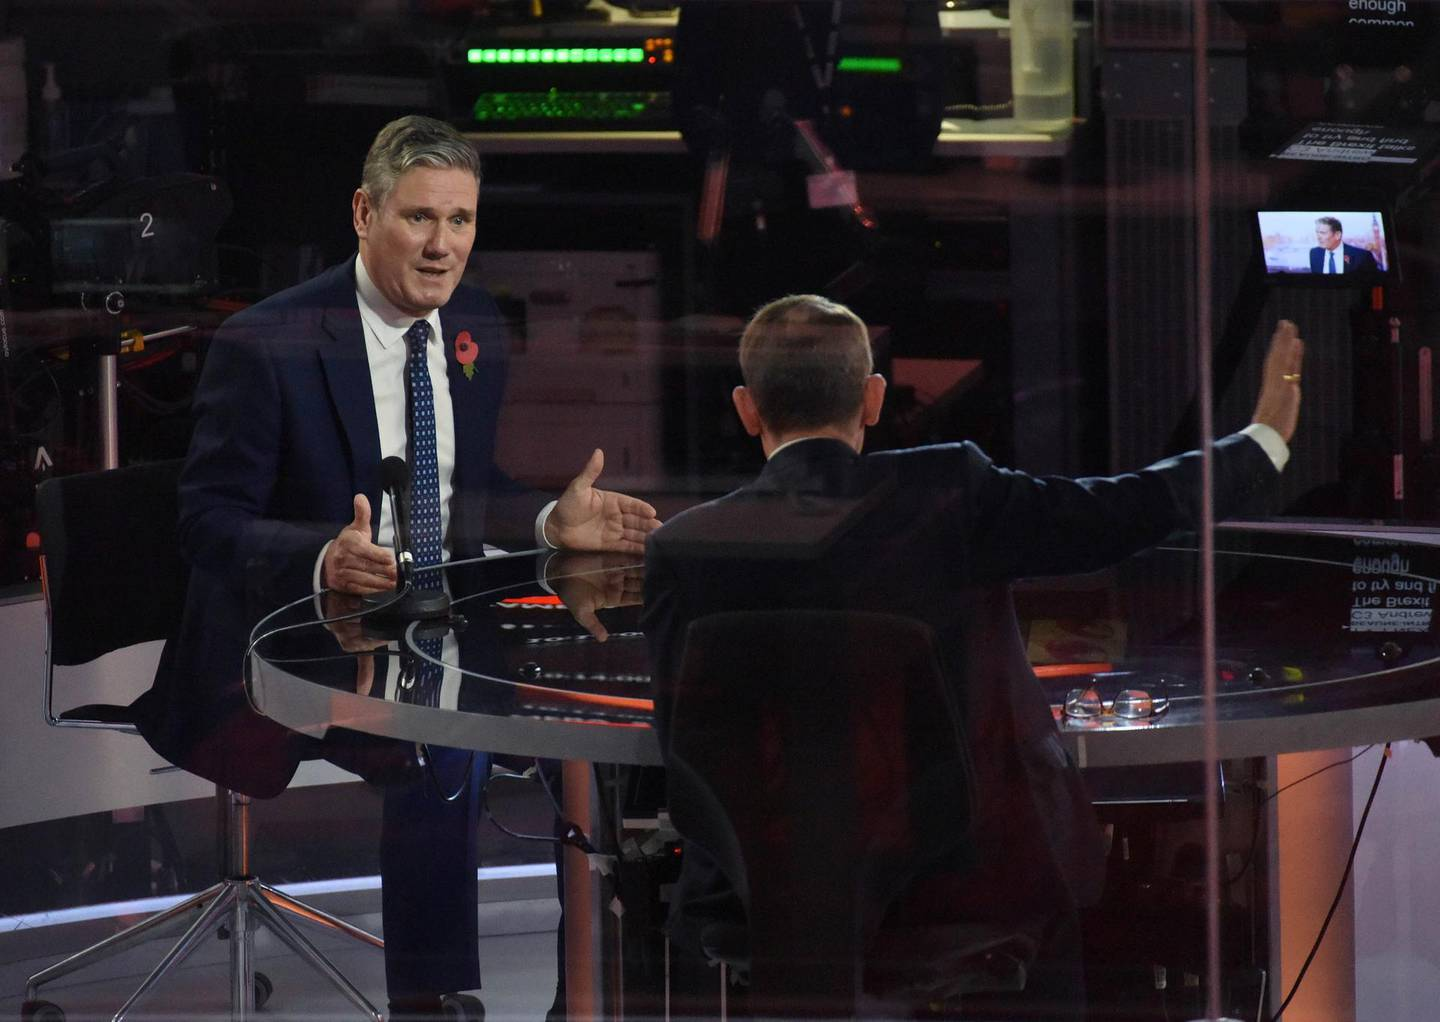 Britain's opposition Labour Party leader Keir Starmer appears on BBC TV's The Andrew Marr Show in London, Britain November 1, 2020. Picture taken through glass. Jeff Overs/BBC/Handout via REUTERS THIS IMAGE HAS BEEN SUPPLIED BY A THIRD PARTY. NO RESALES. NO ARCHIVES. NO NEW USES 21 DAYS OF ISSUE